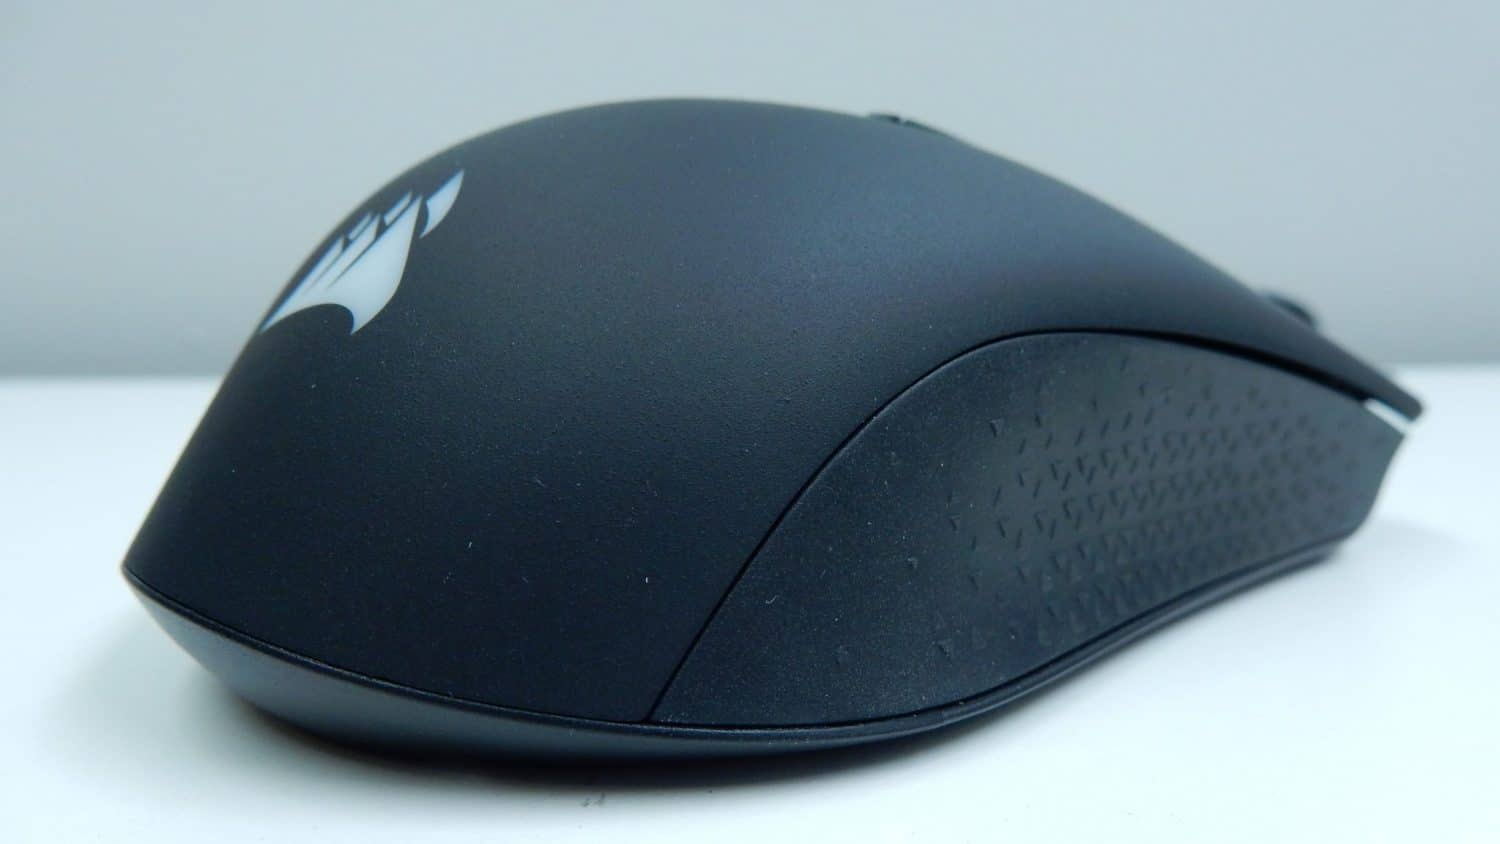 68ad547c677 The left side of the mouse features a textured rubber grip that ensures a  good hold on the Harpoon RGB during quick gaming twitches.